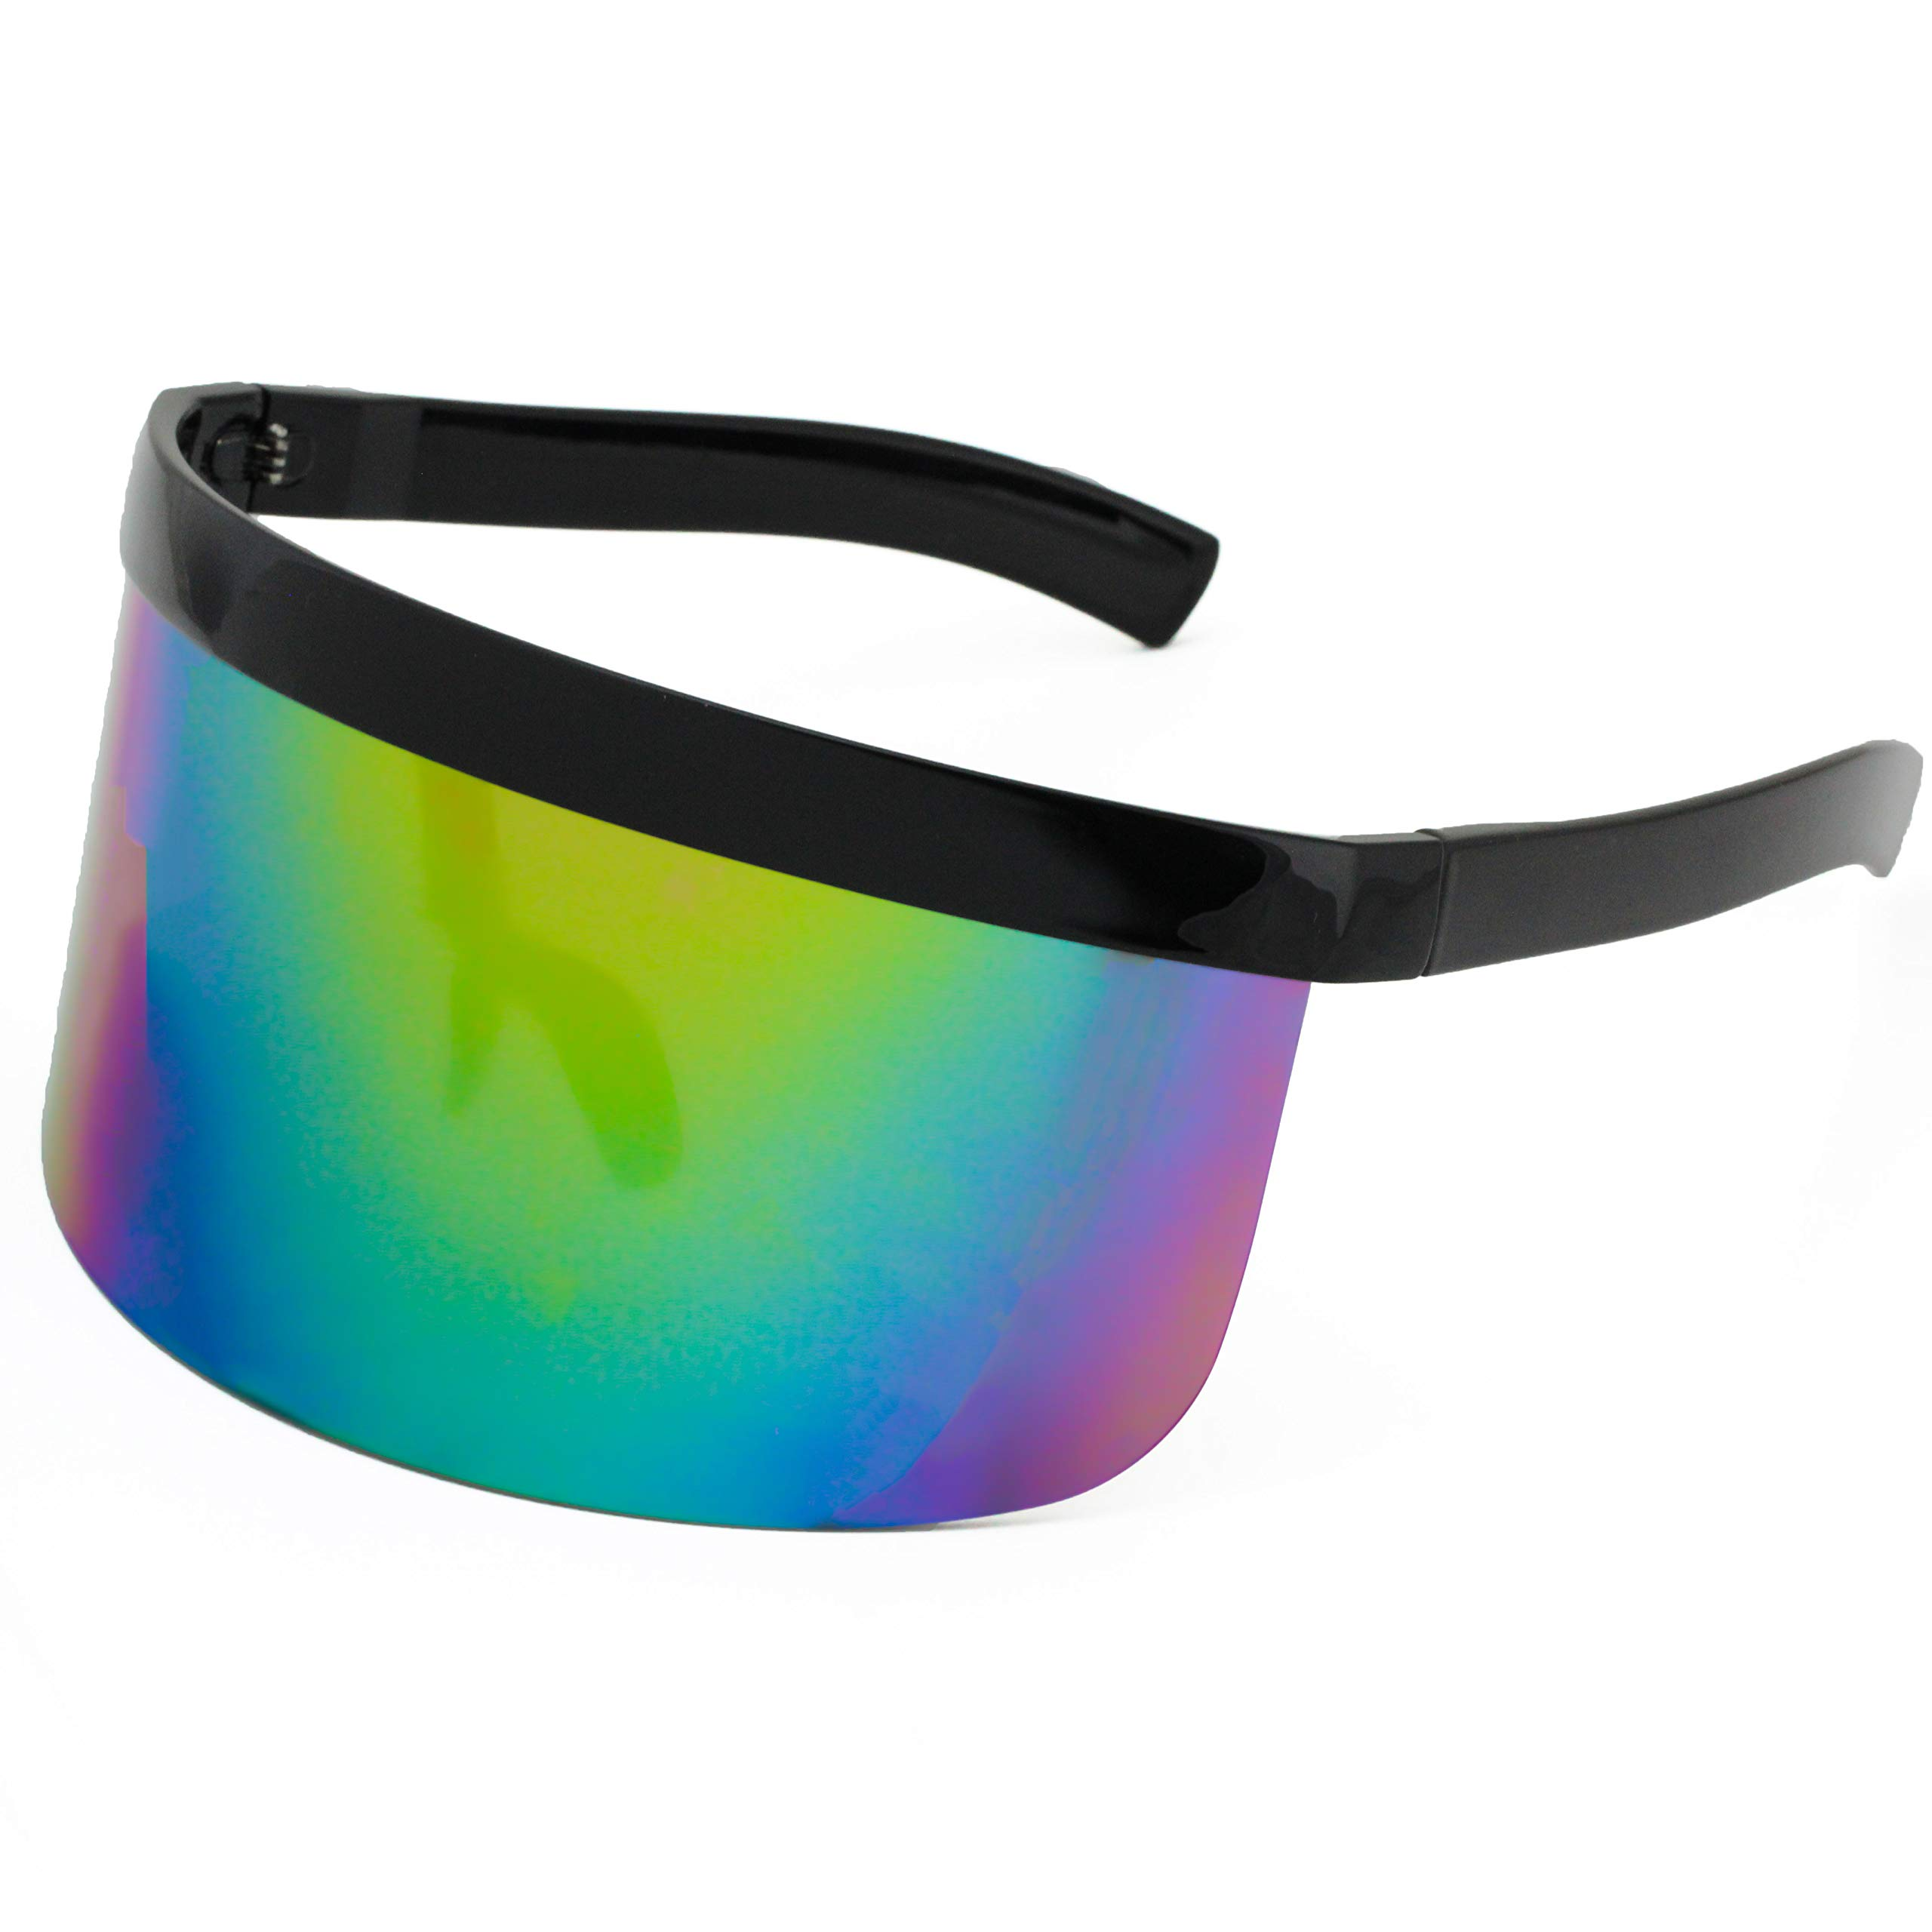 7e3c2b3ae2 Elite Futuristic Oversize Shield Visor Sunglasses Flat Top Mirrored Mono  Lens 172mm (Rainbow Mirror